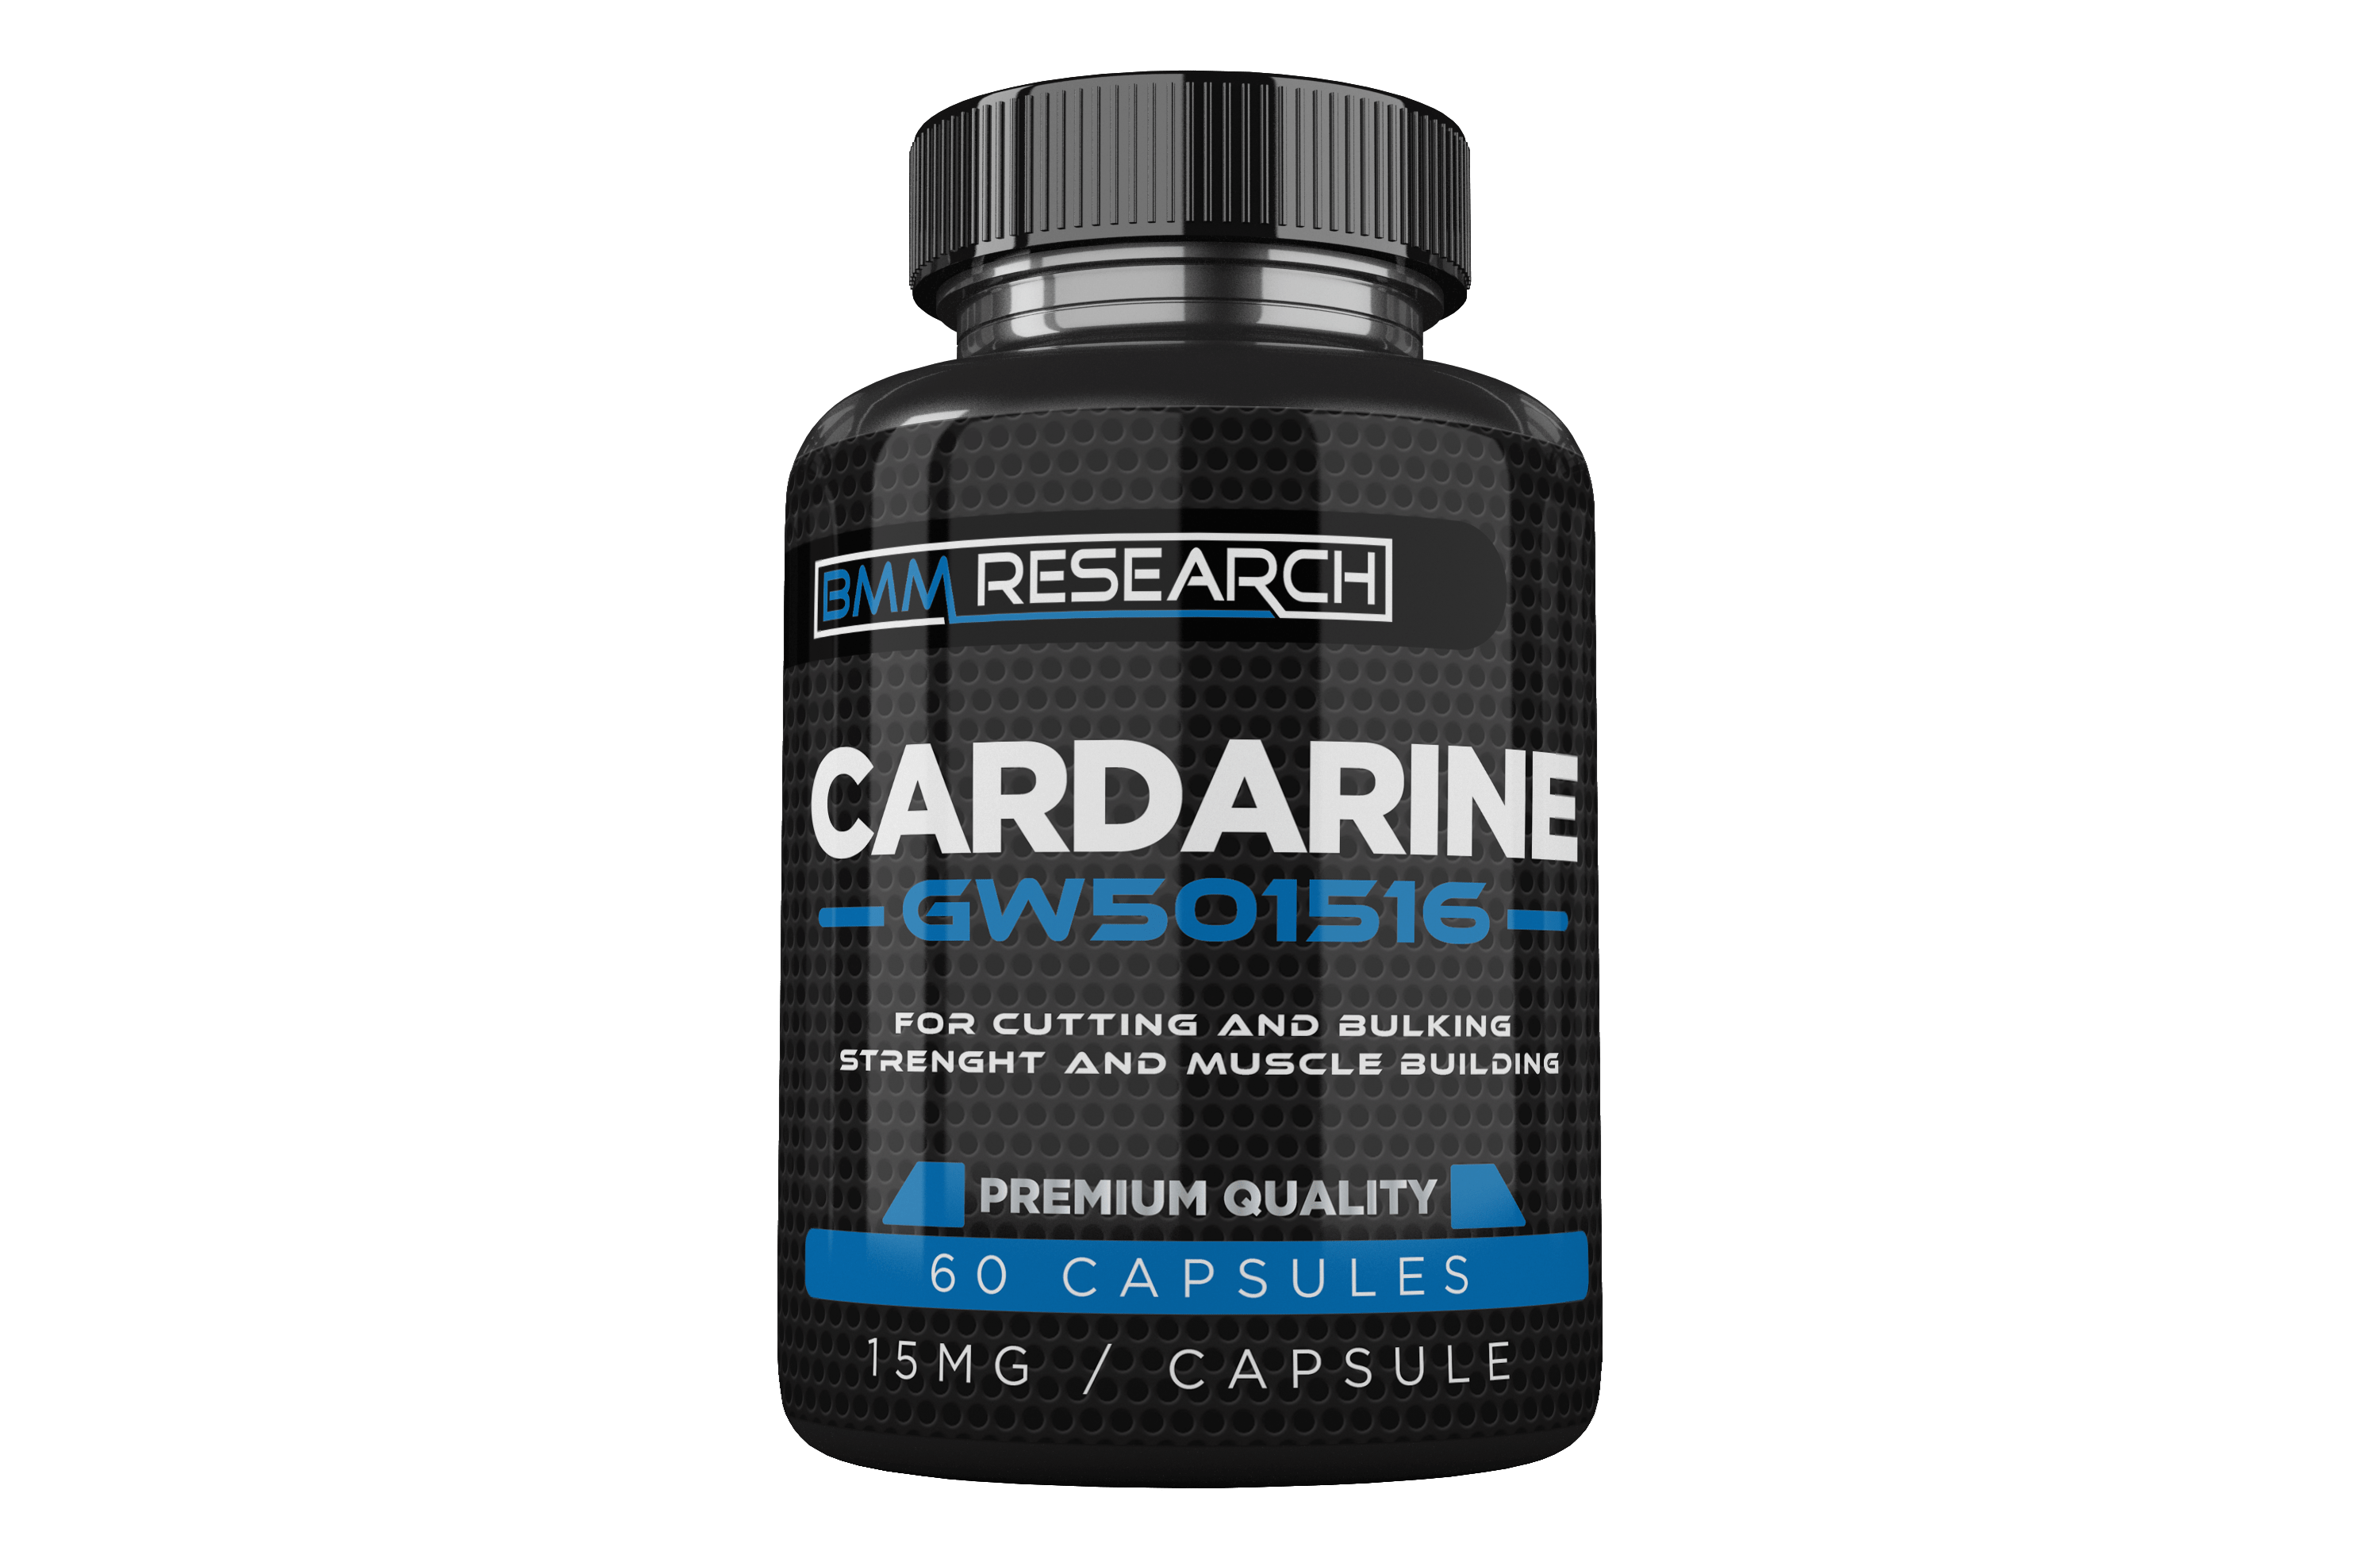 Cardarine GW510516 - For cutting and bulking strenght and muscle building